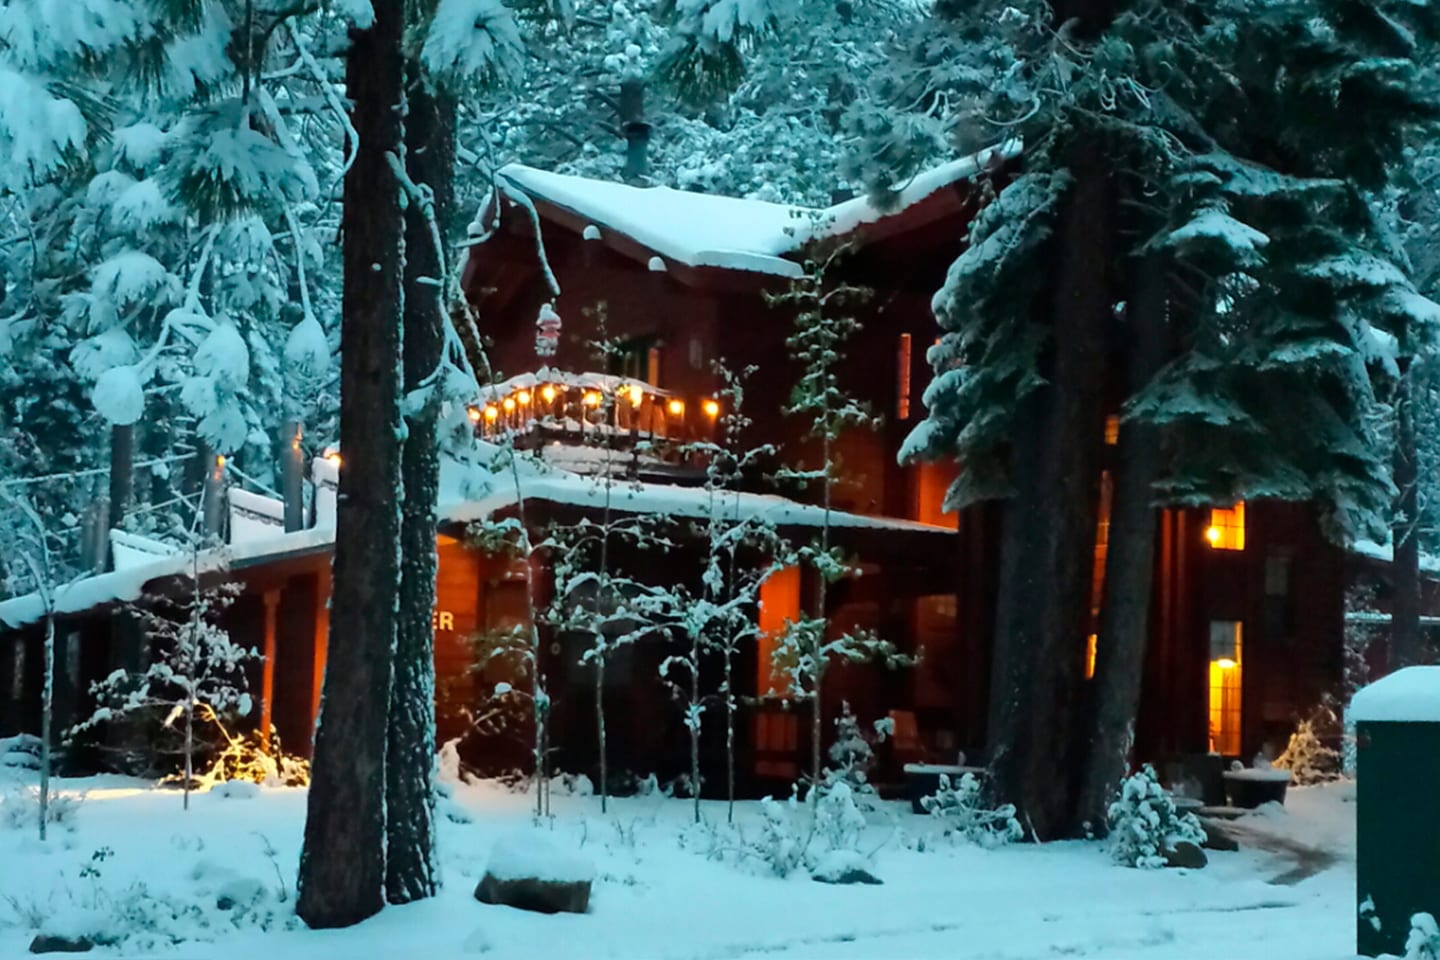 Donner Lake Inn in the snow